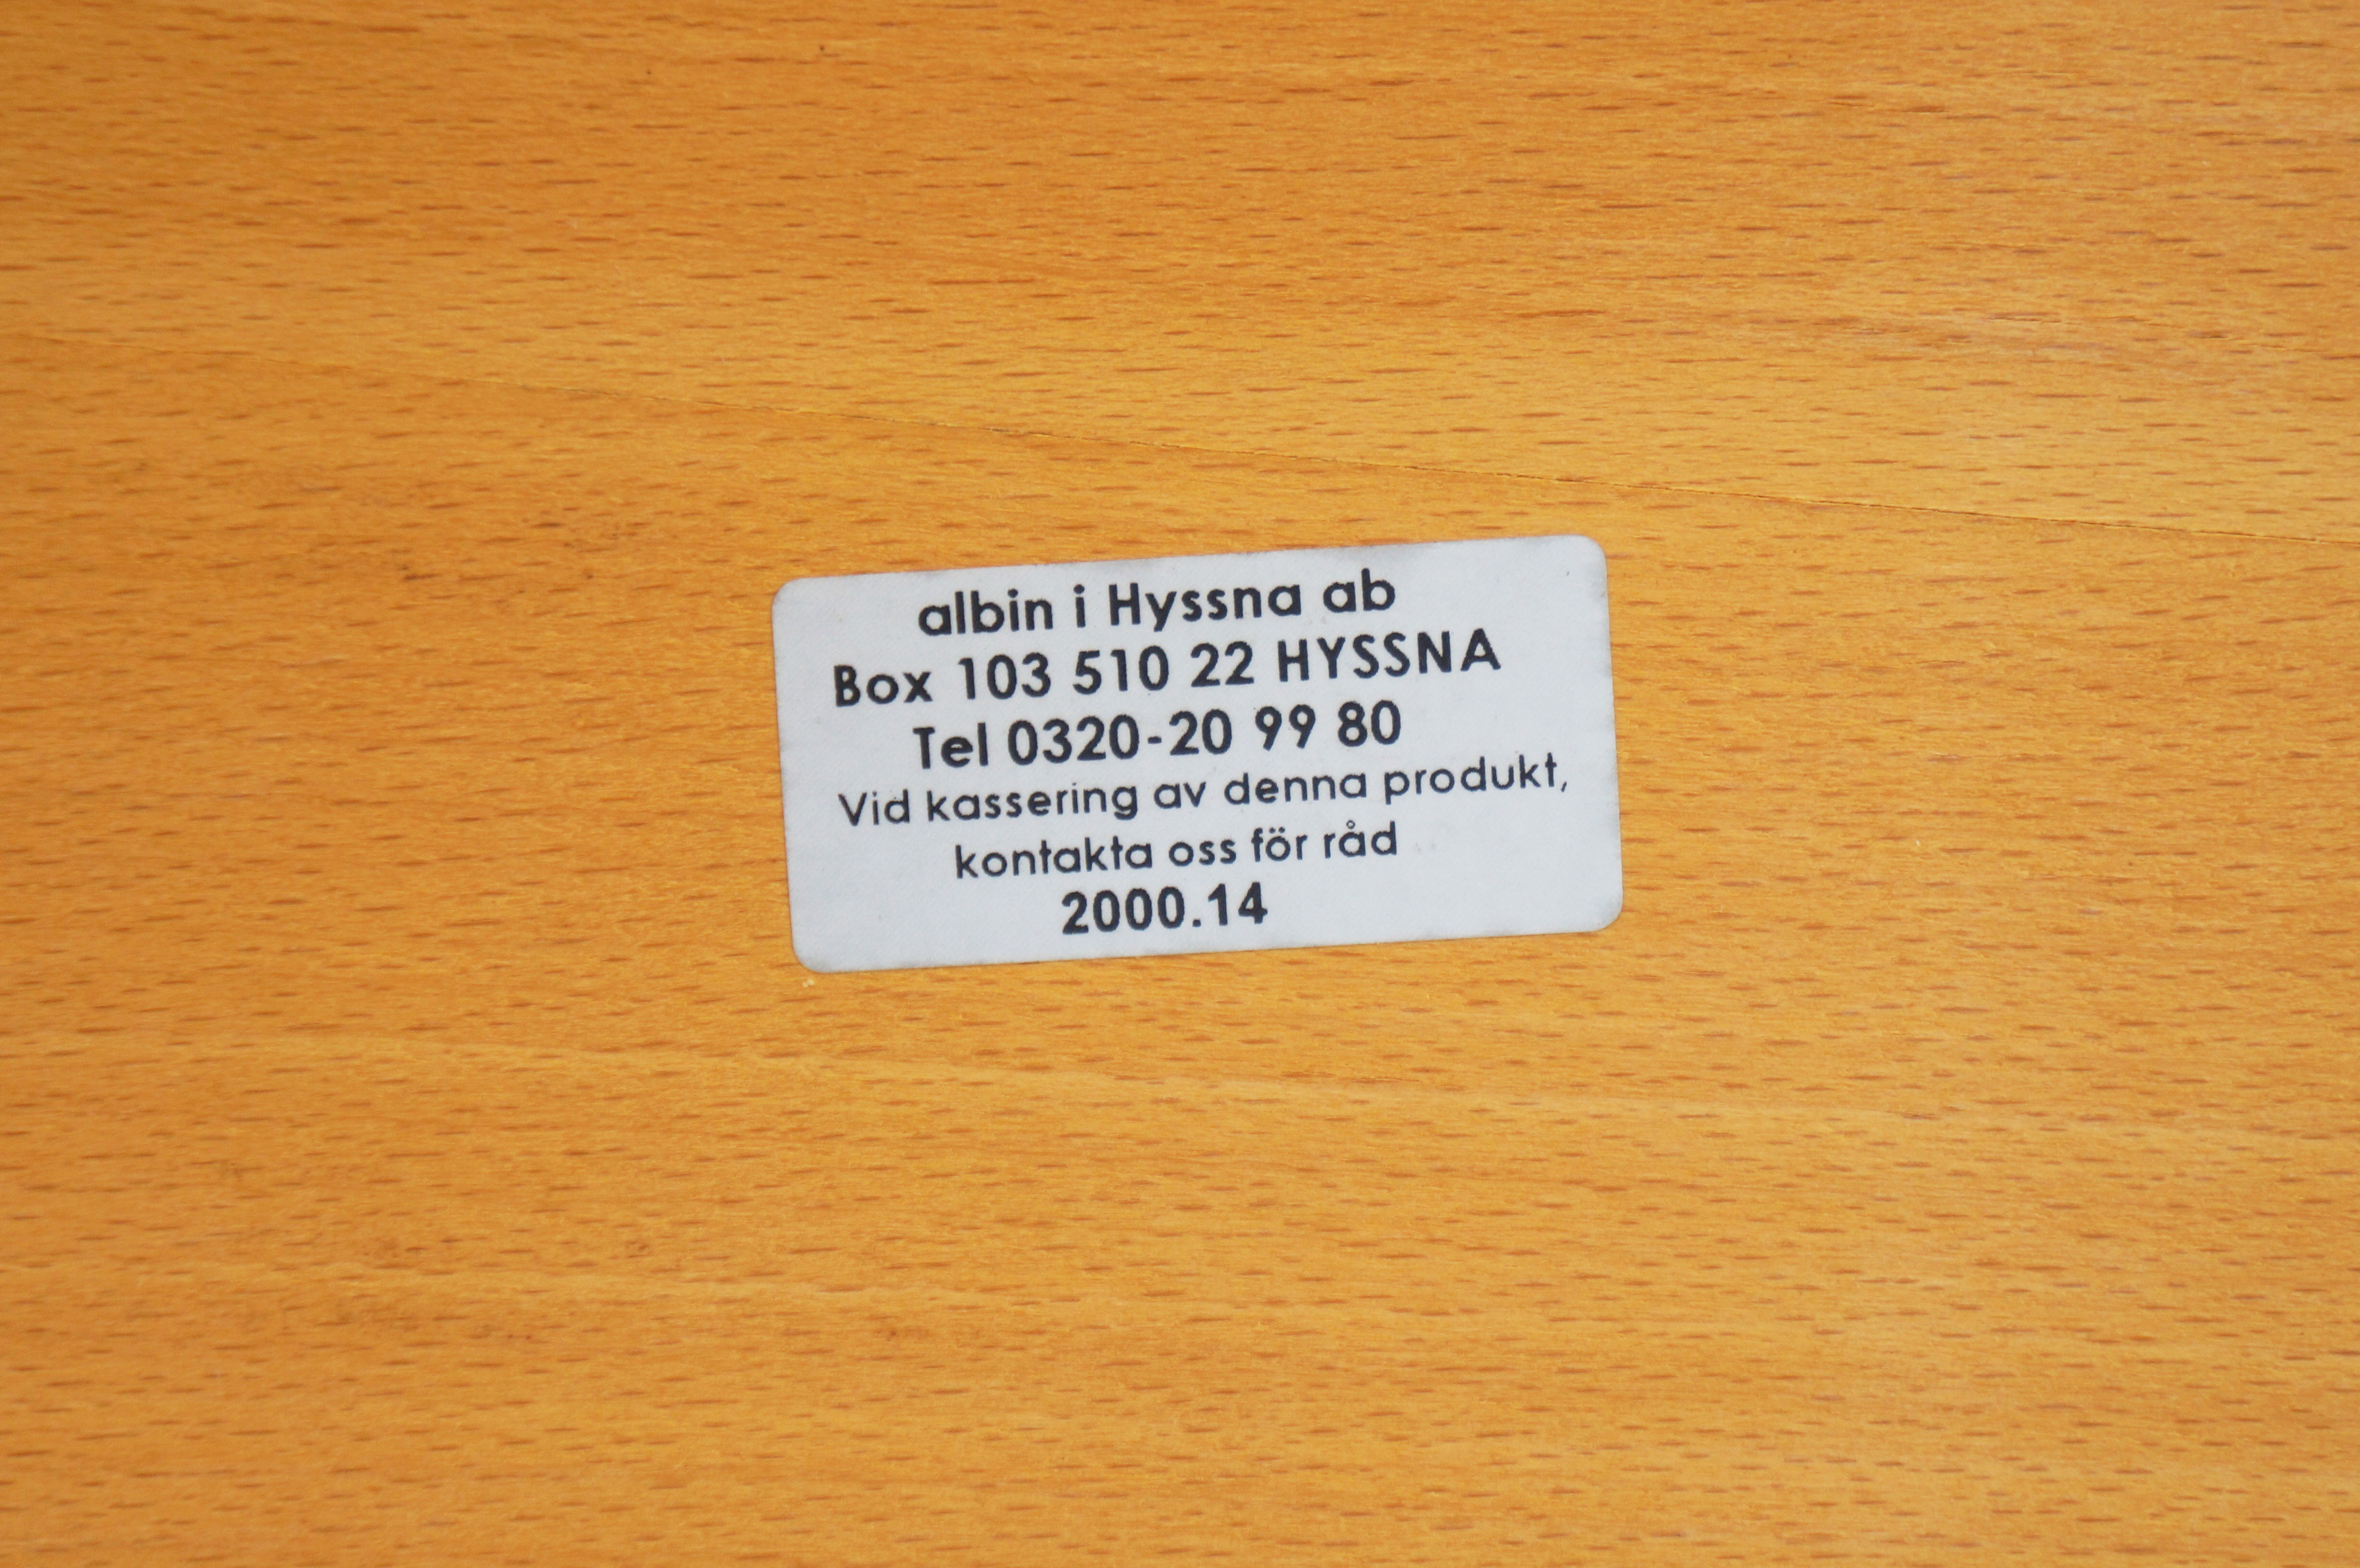 Albin i Hyssna ab Sofa Table made in Sweden/Albin i Hyssna ab ソファテーブル スウェーデン